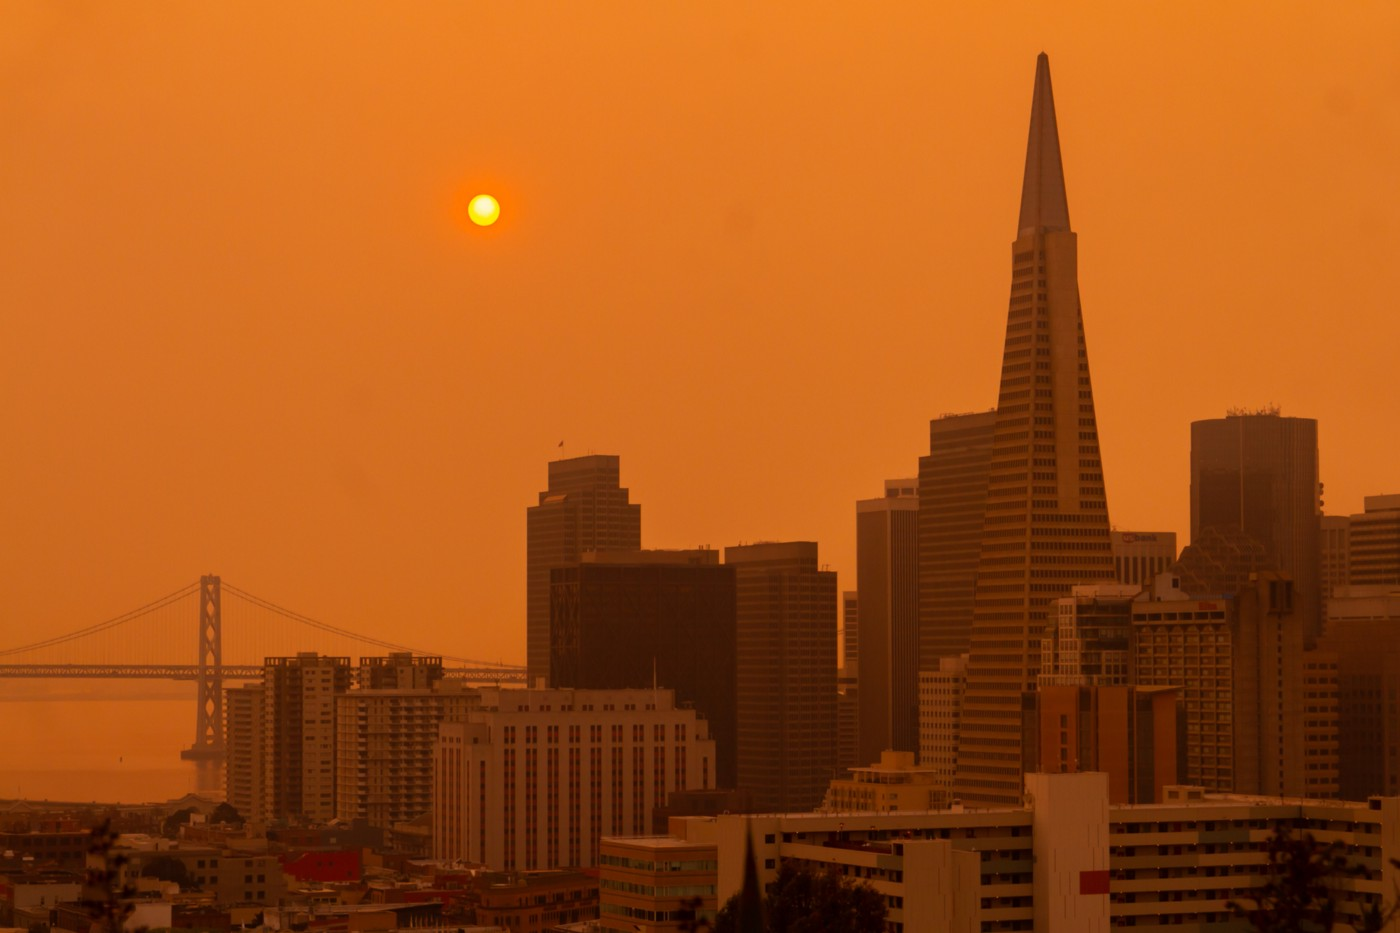 The city of San Francisco under smoke-filled skies.